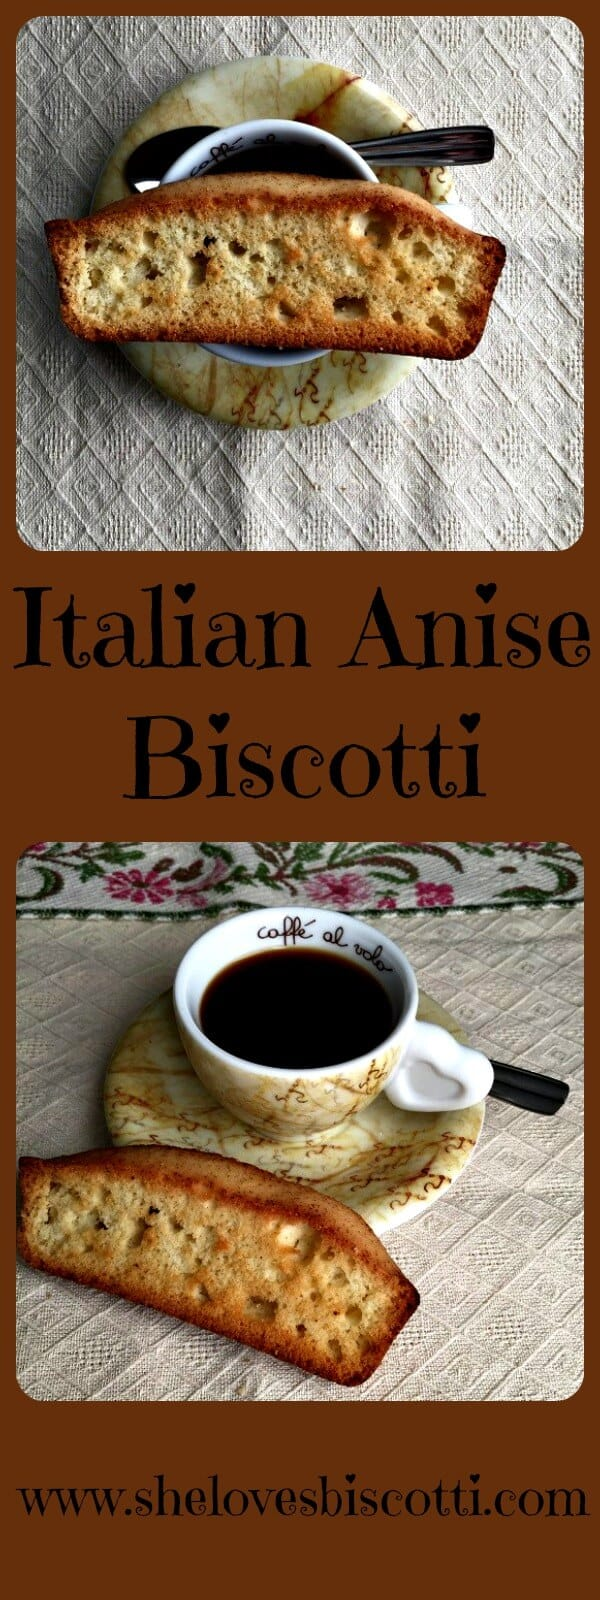 Two different pictures of an anise biscotti shown with a cup of espresso.